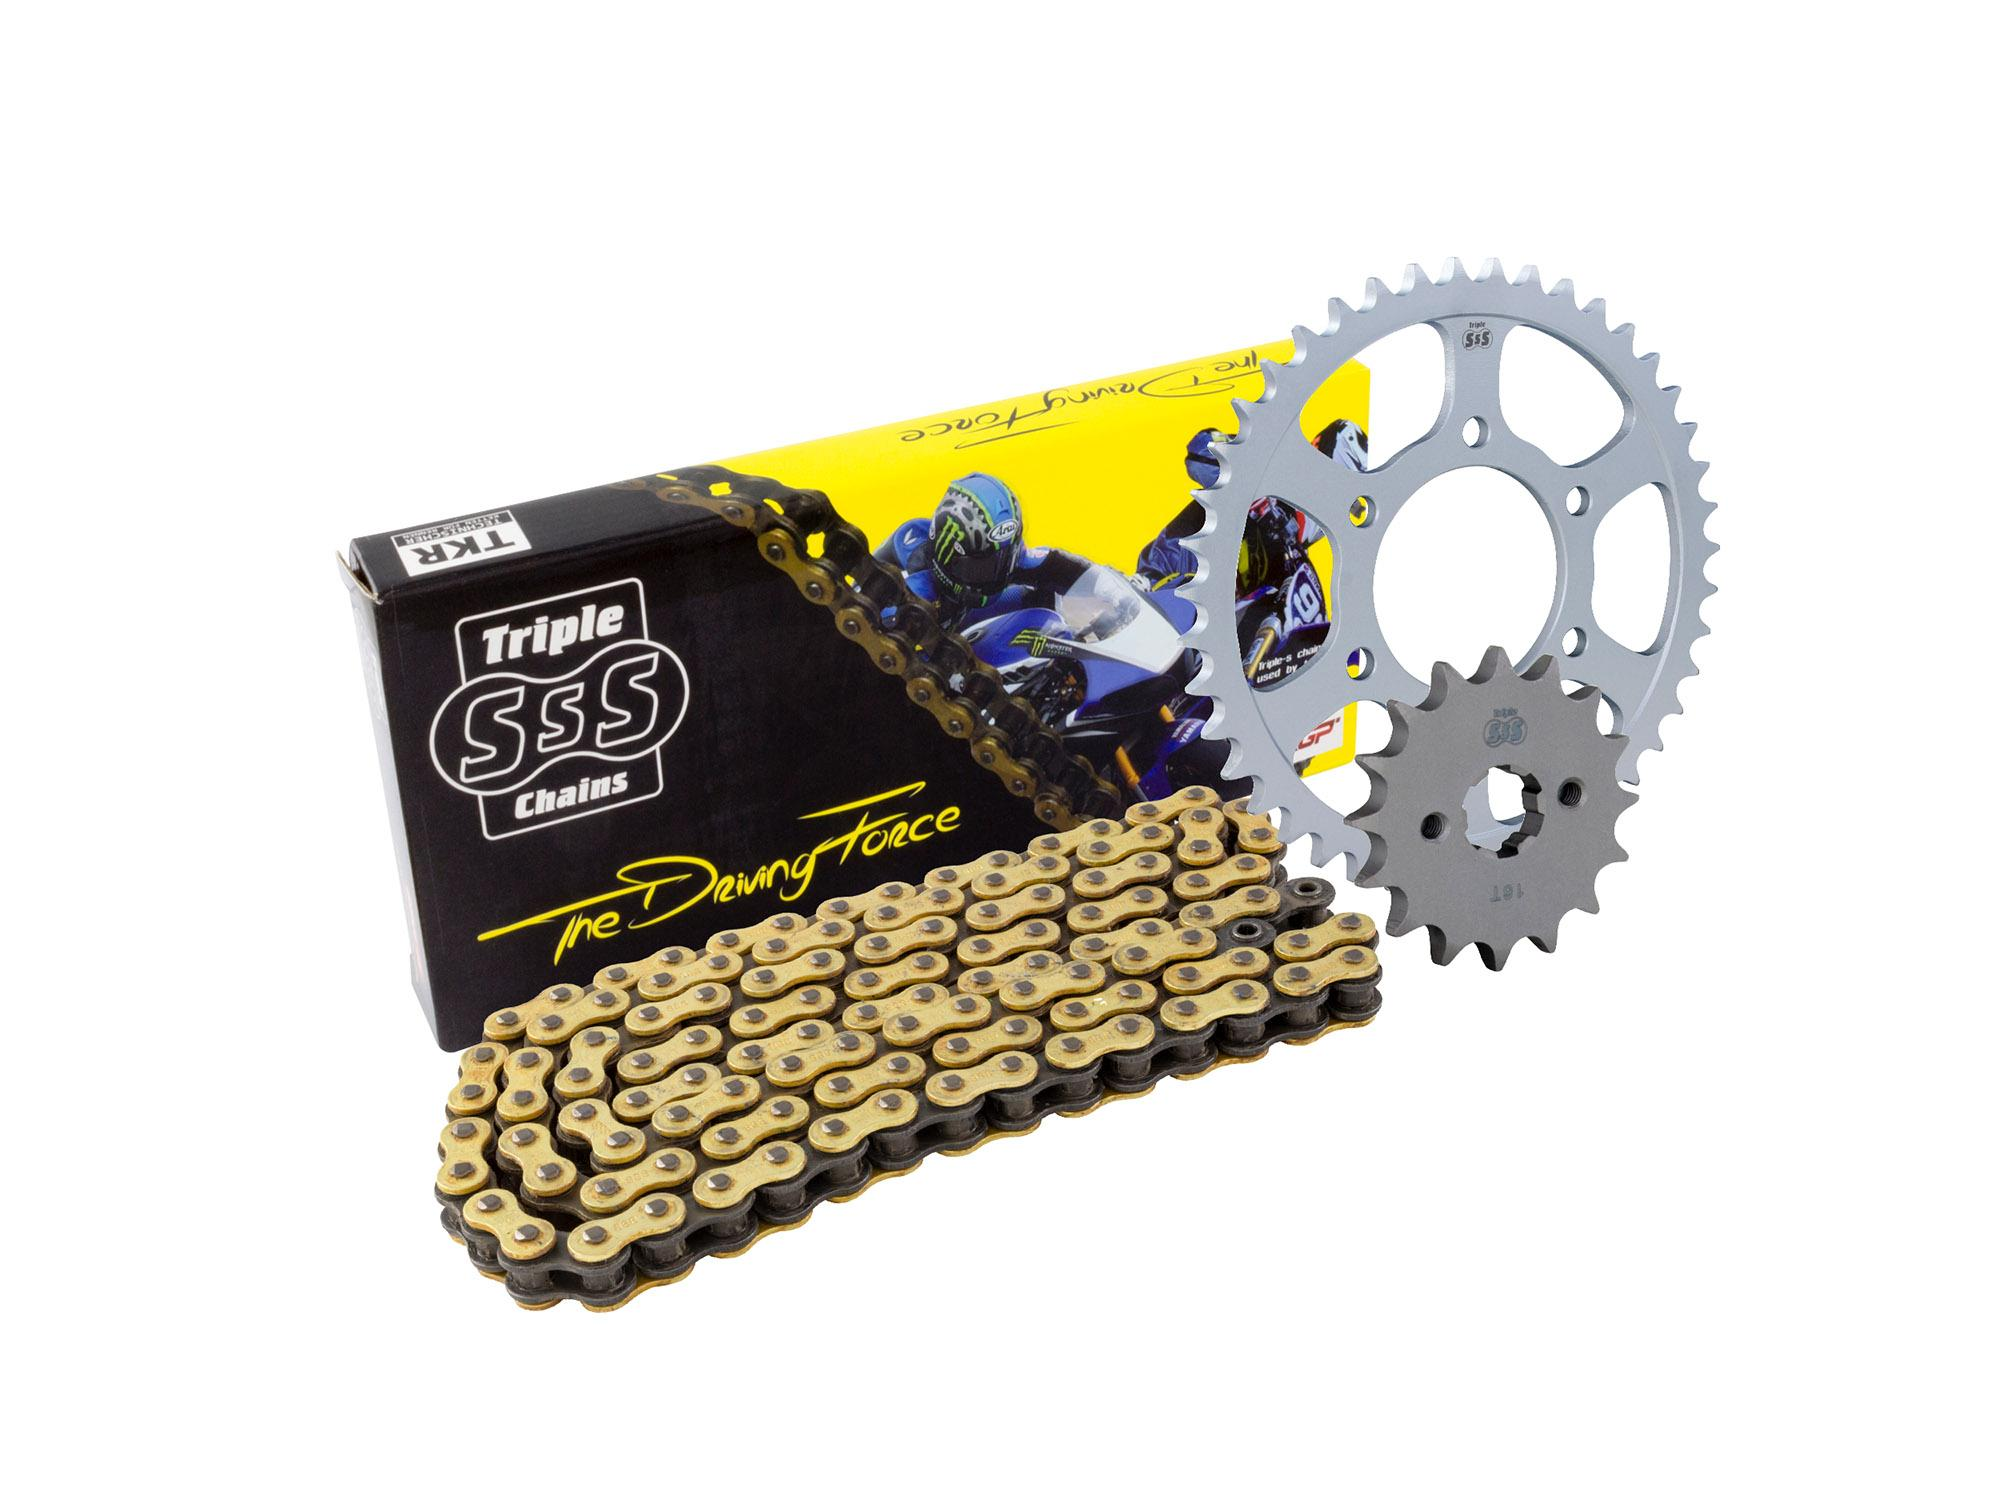 Suzuki GSX1250 F/FA Traveller L0 10 Chain & Sprocket Kit: 18T Front, 43T Rear, HD O-Ring Gold Chain 530H 120 Link